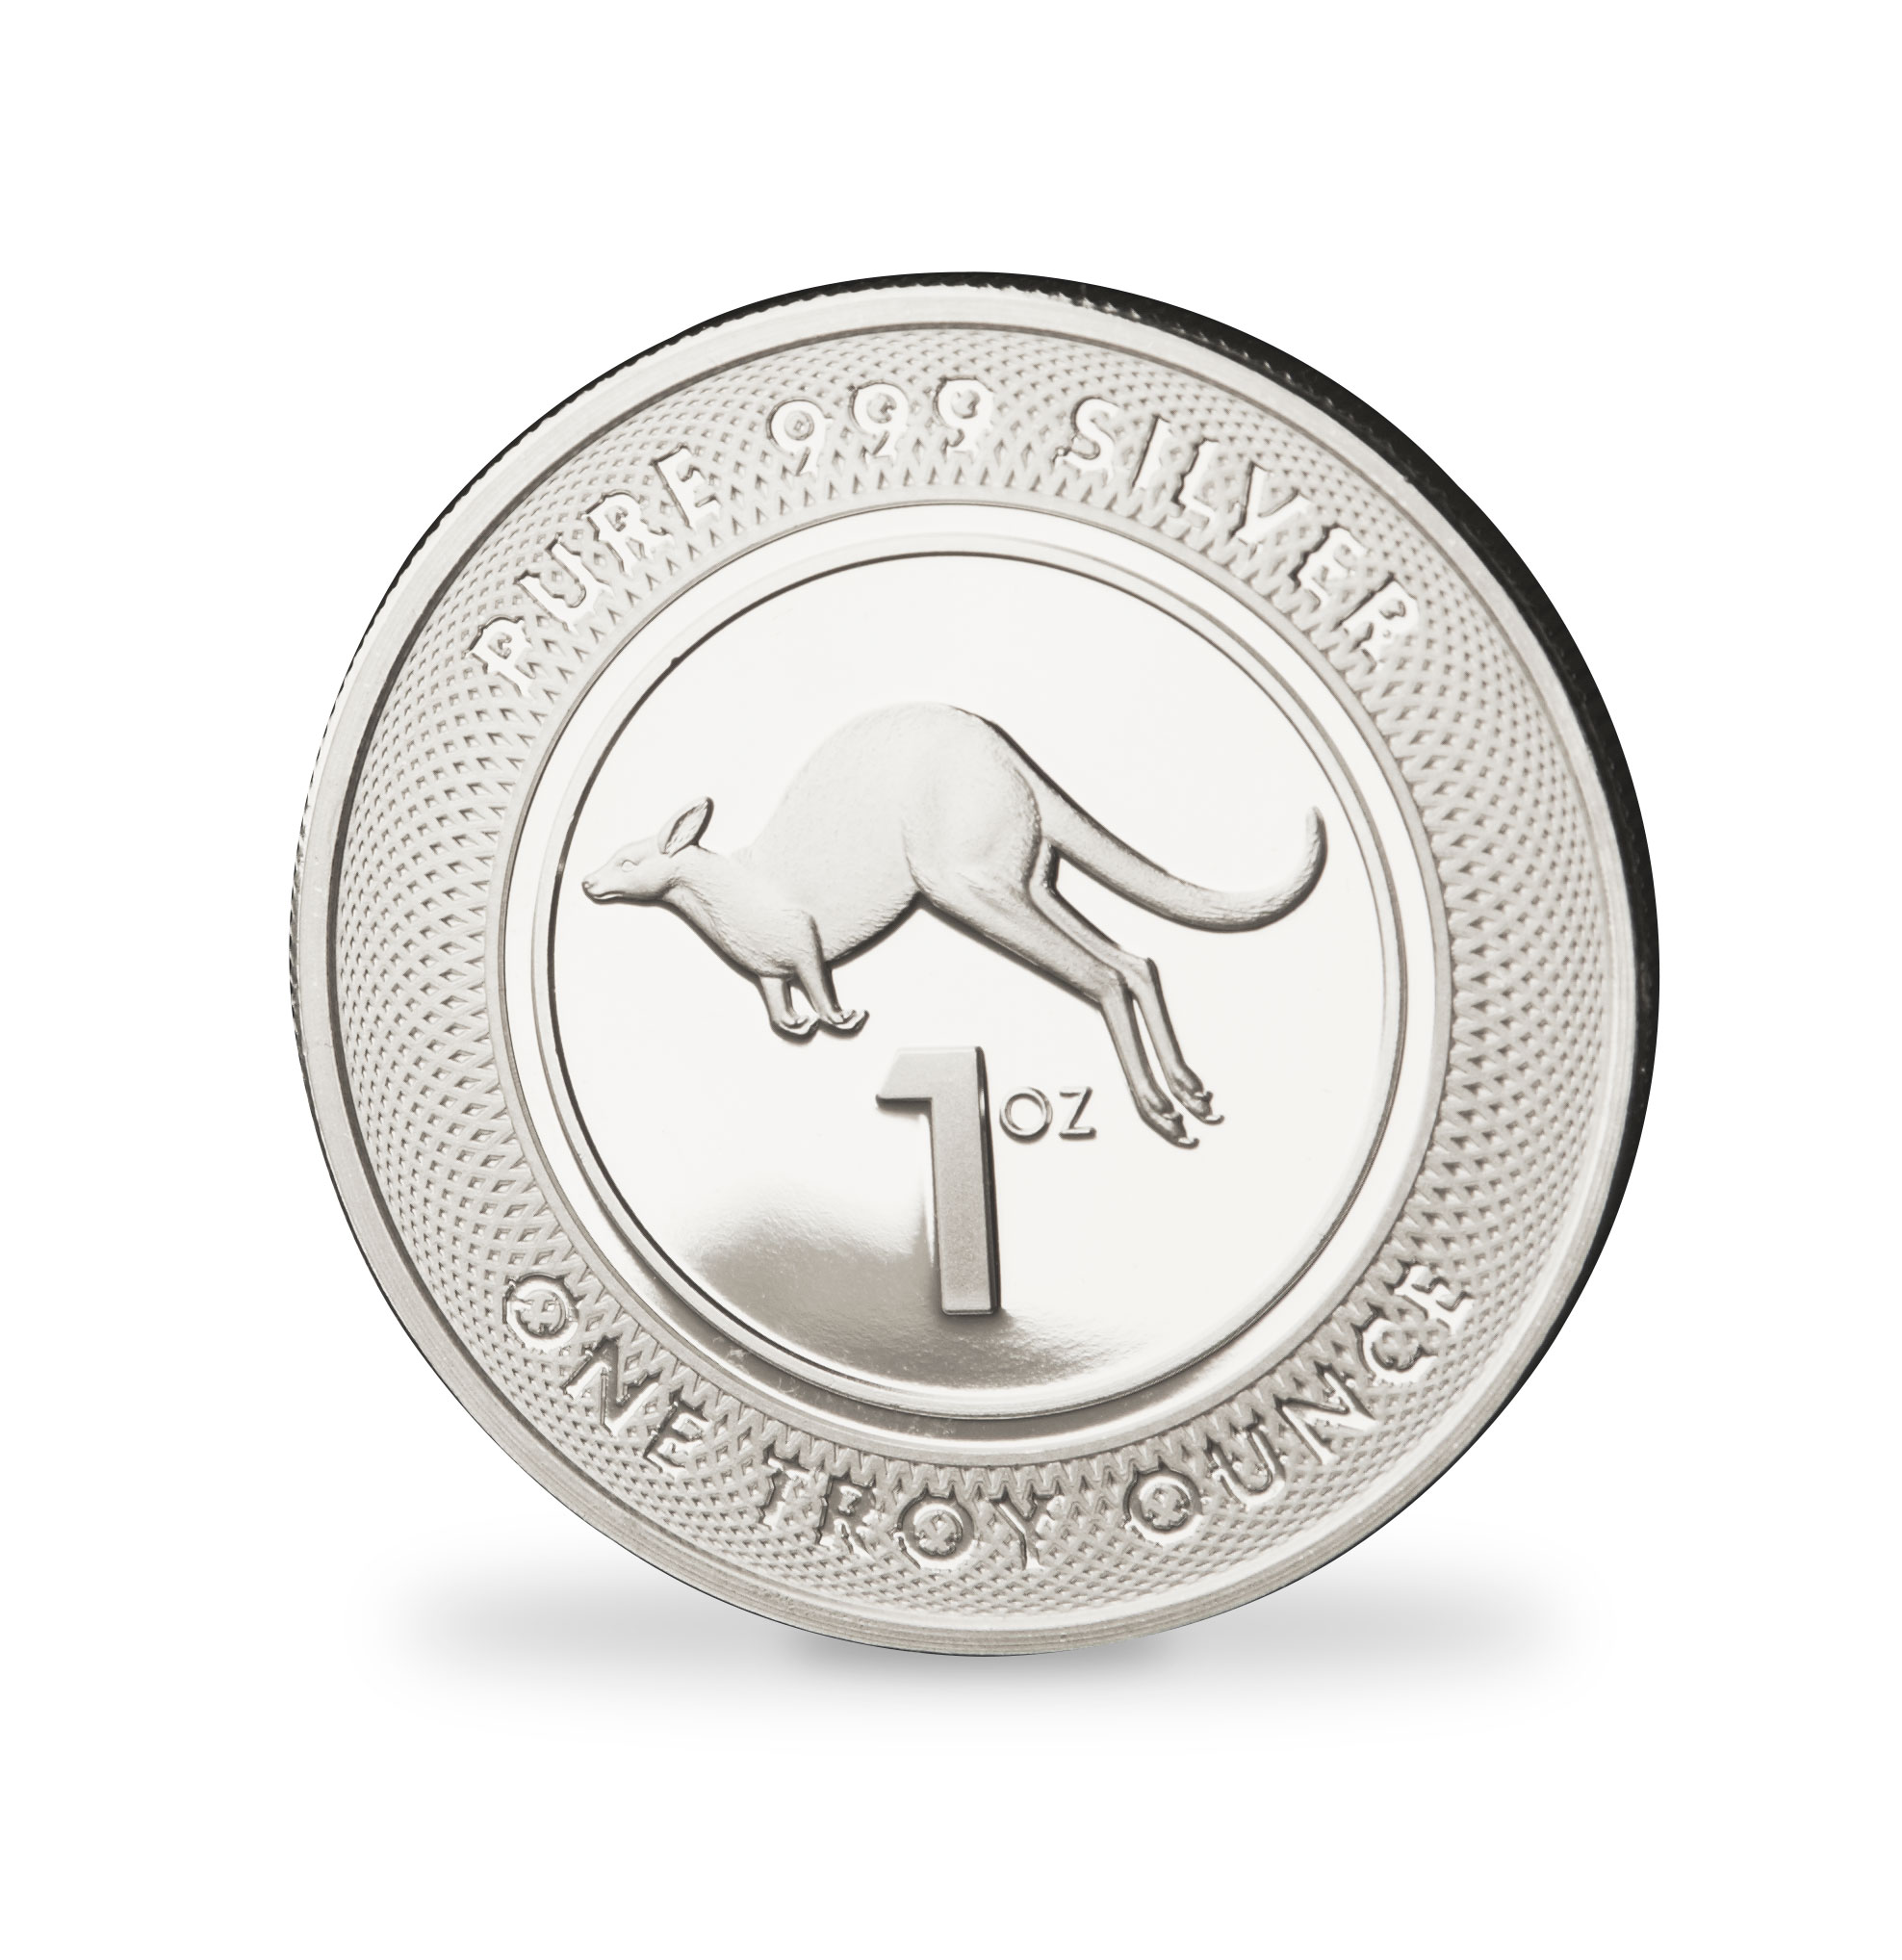 Buy 1oz Melbourne Mint Kangaroo Silver Coin Online